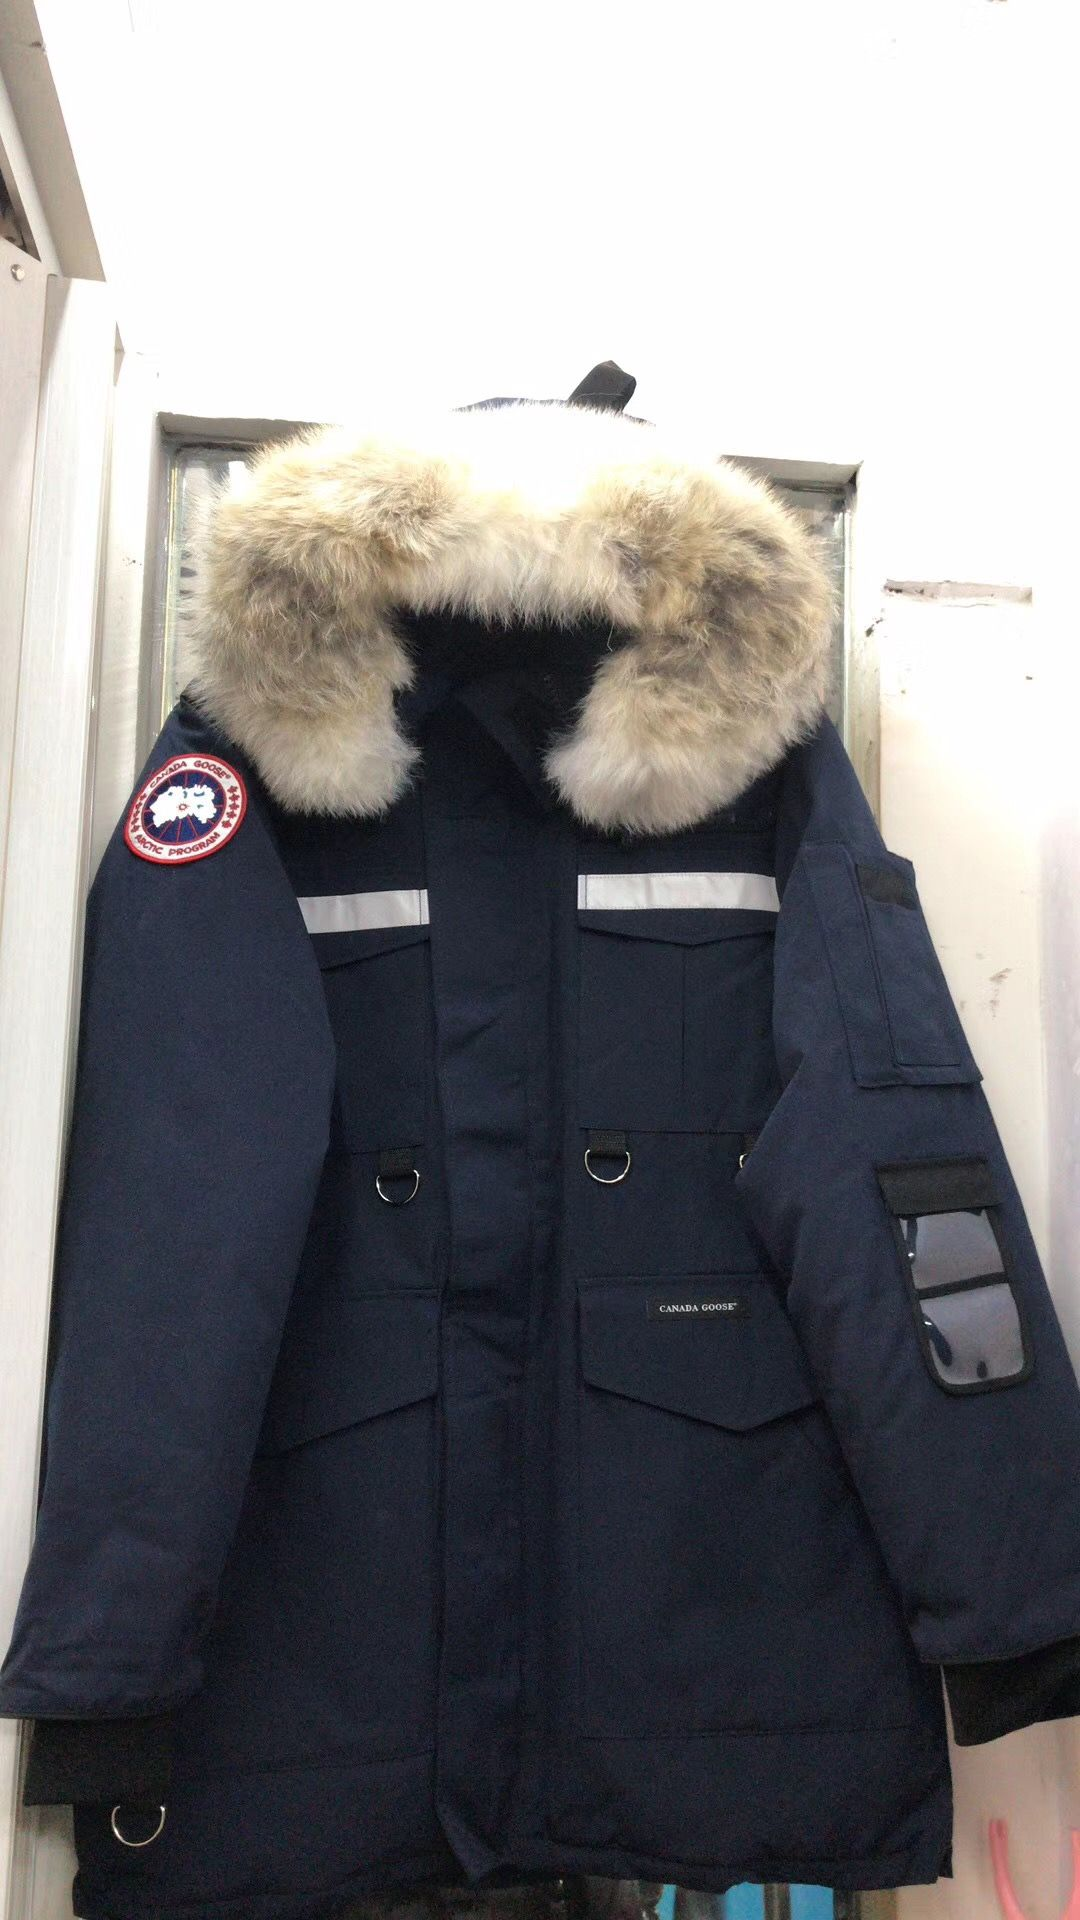 down jacket moncler canada goose coat (With images)